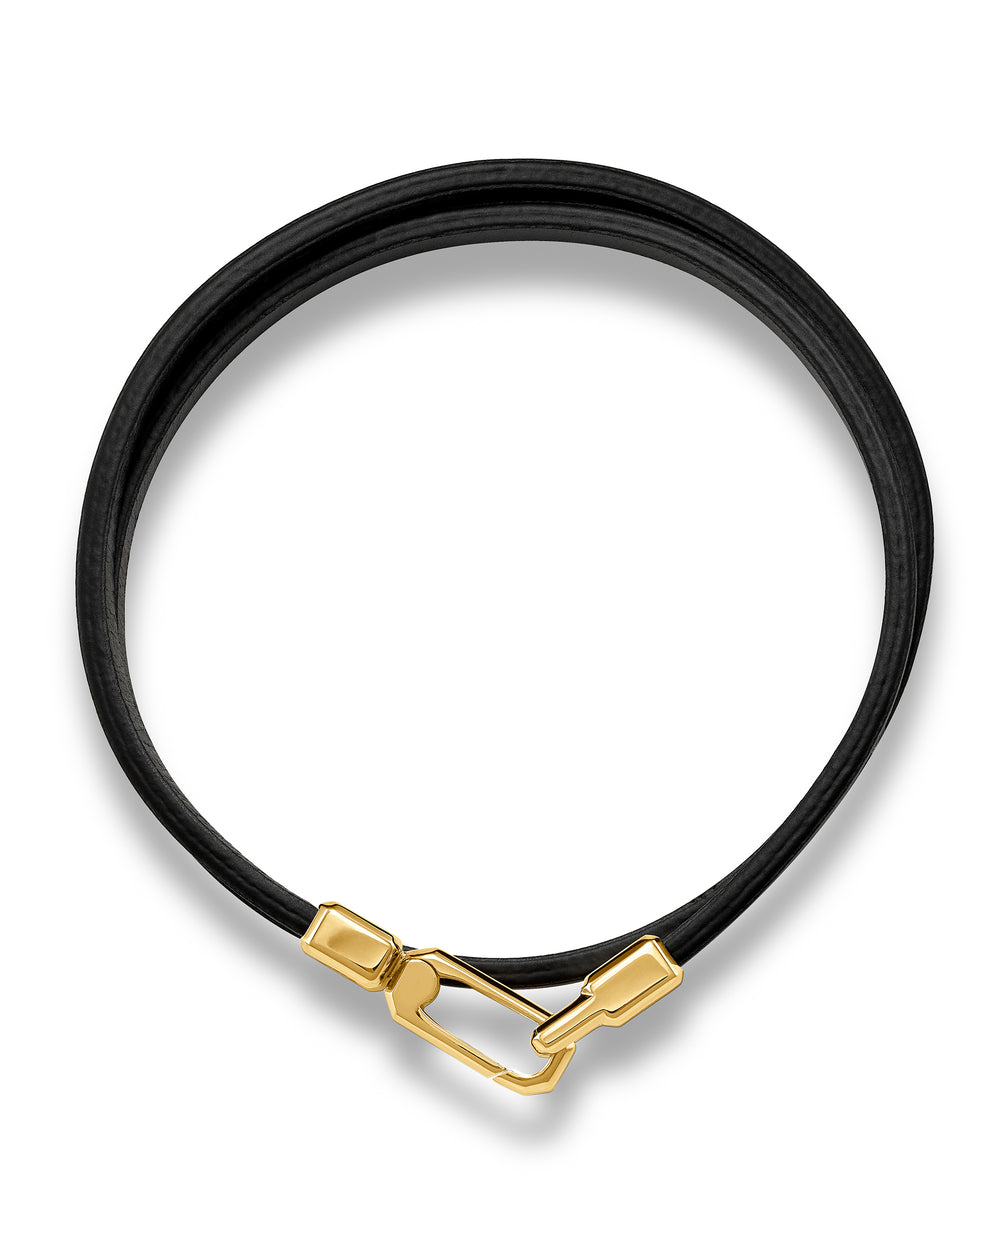 The Hitch - Black/Gold